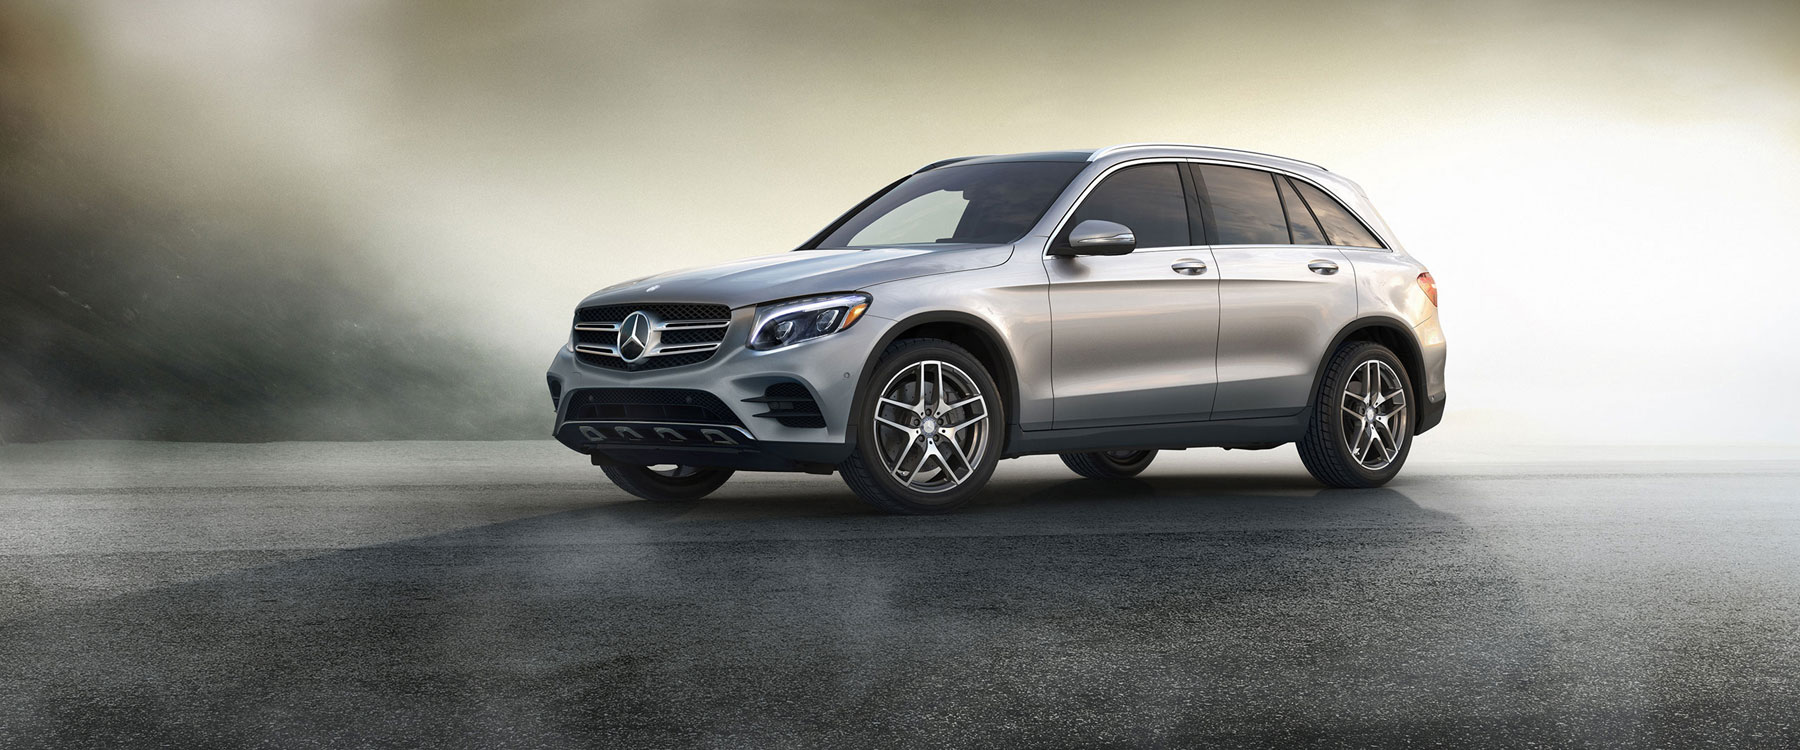 the 2018 mercedes benz glc 300 is a competitive compact suv